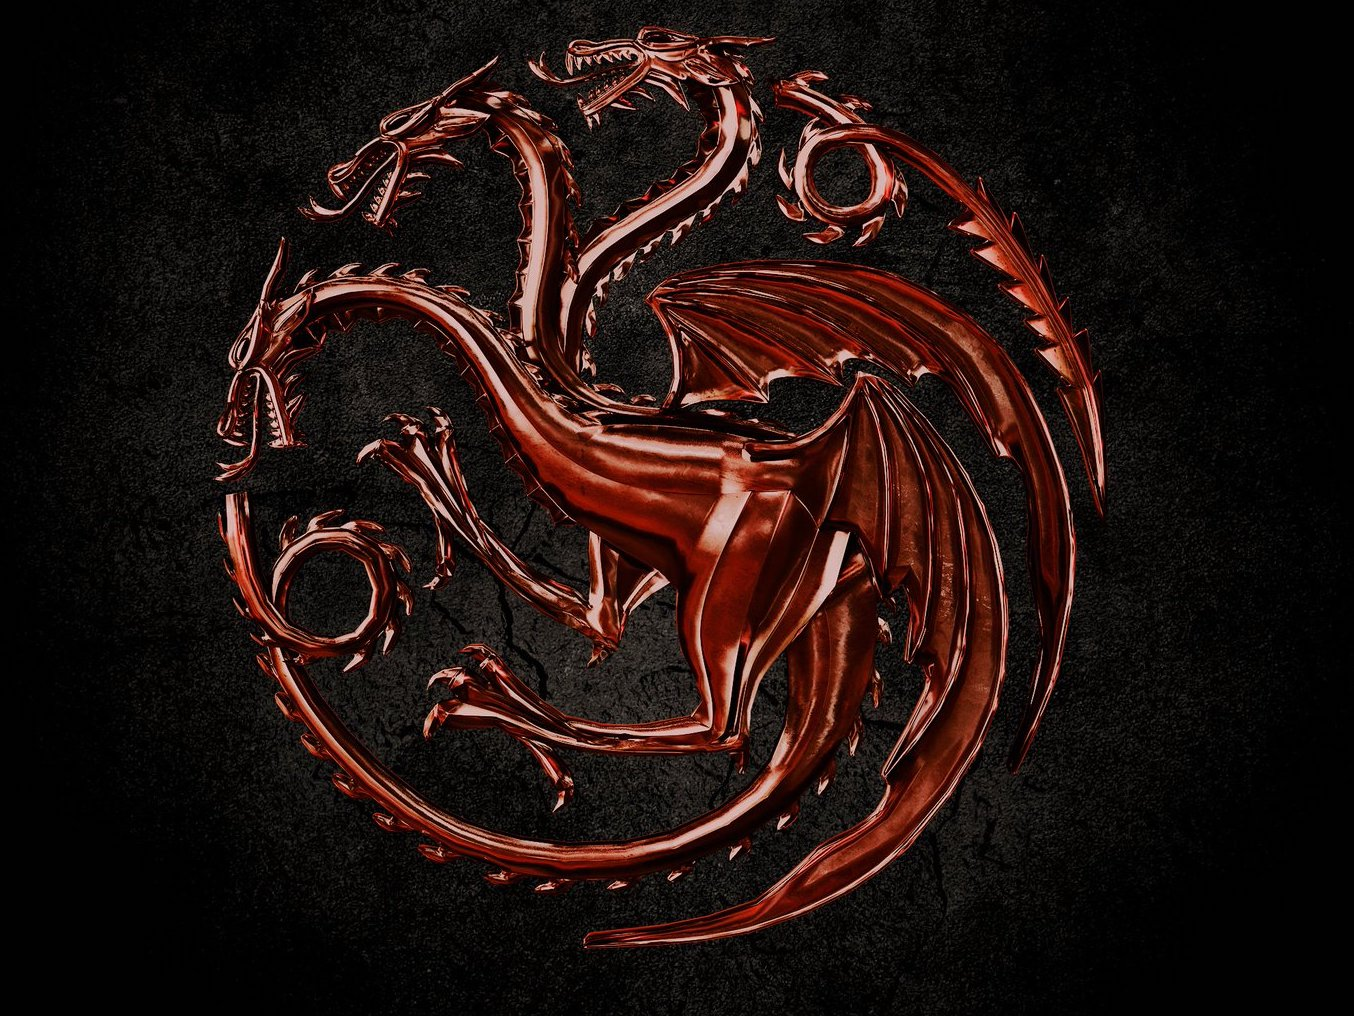 'Game of Thrones' spinoff 'House of the Dragon' releases first teaser trailer